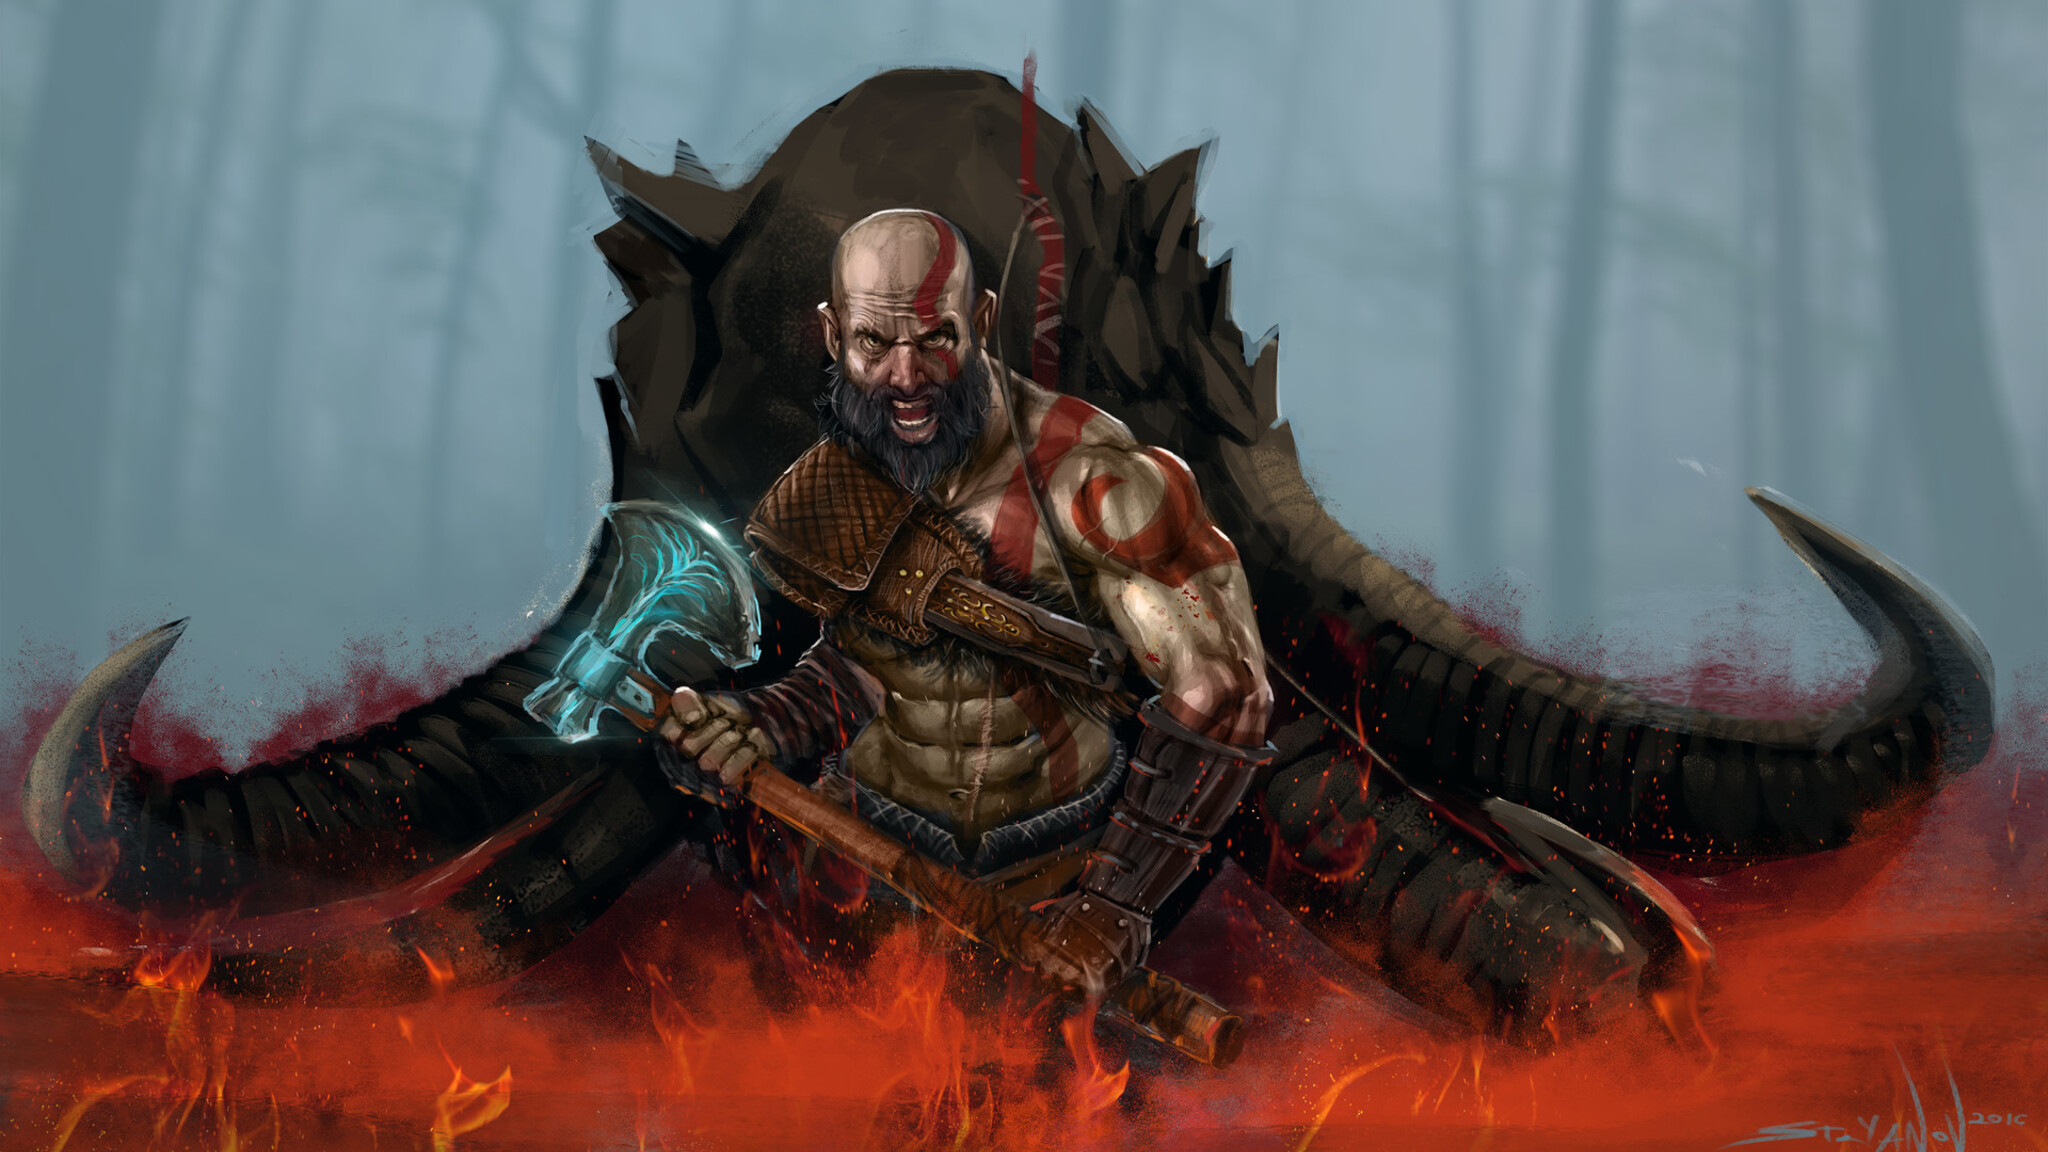 2048x1152 God Of War 4 Art 2048x1152 Resolution Hd 4k Wallpapers